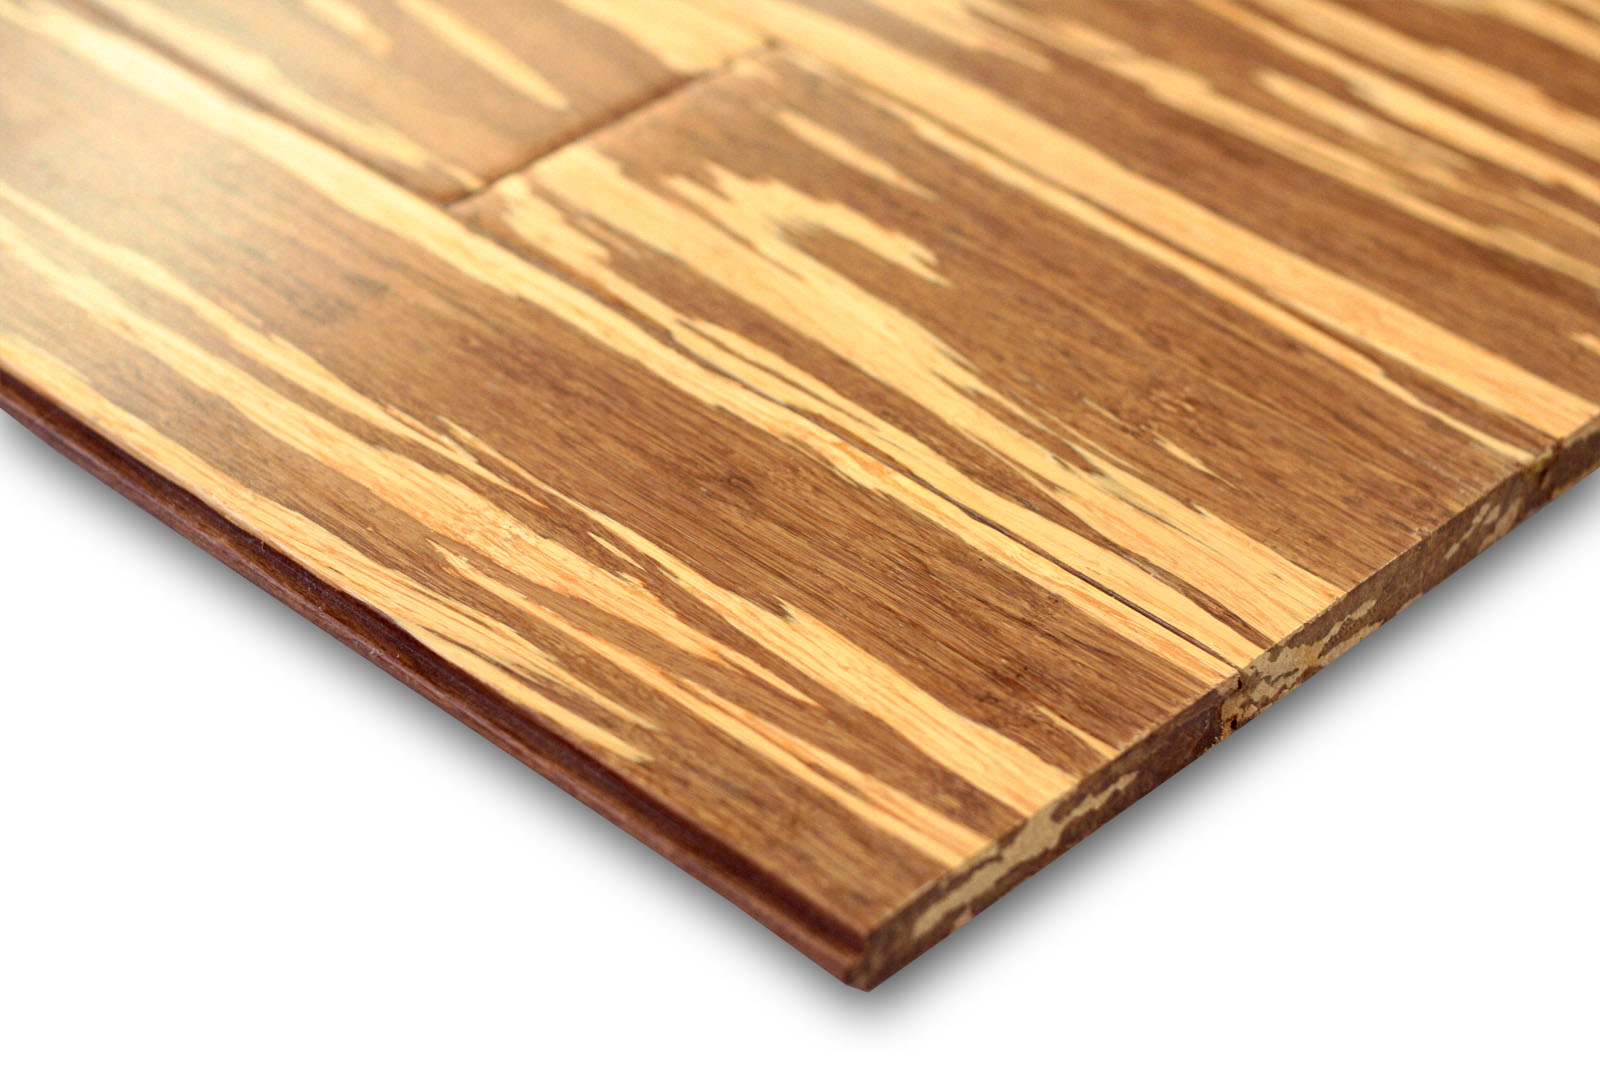 Discount hardwood flooring flooring ideas home for Click flooring